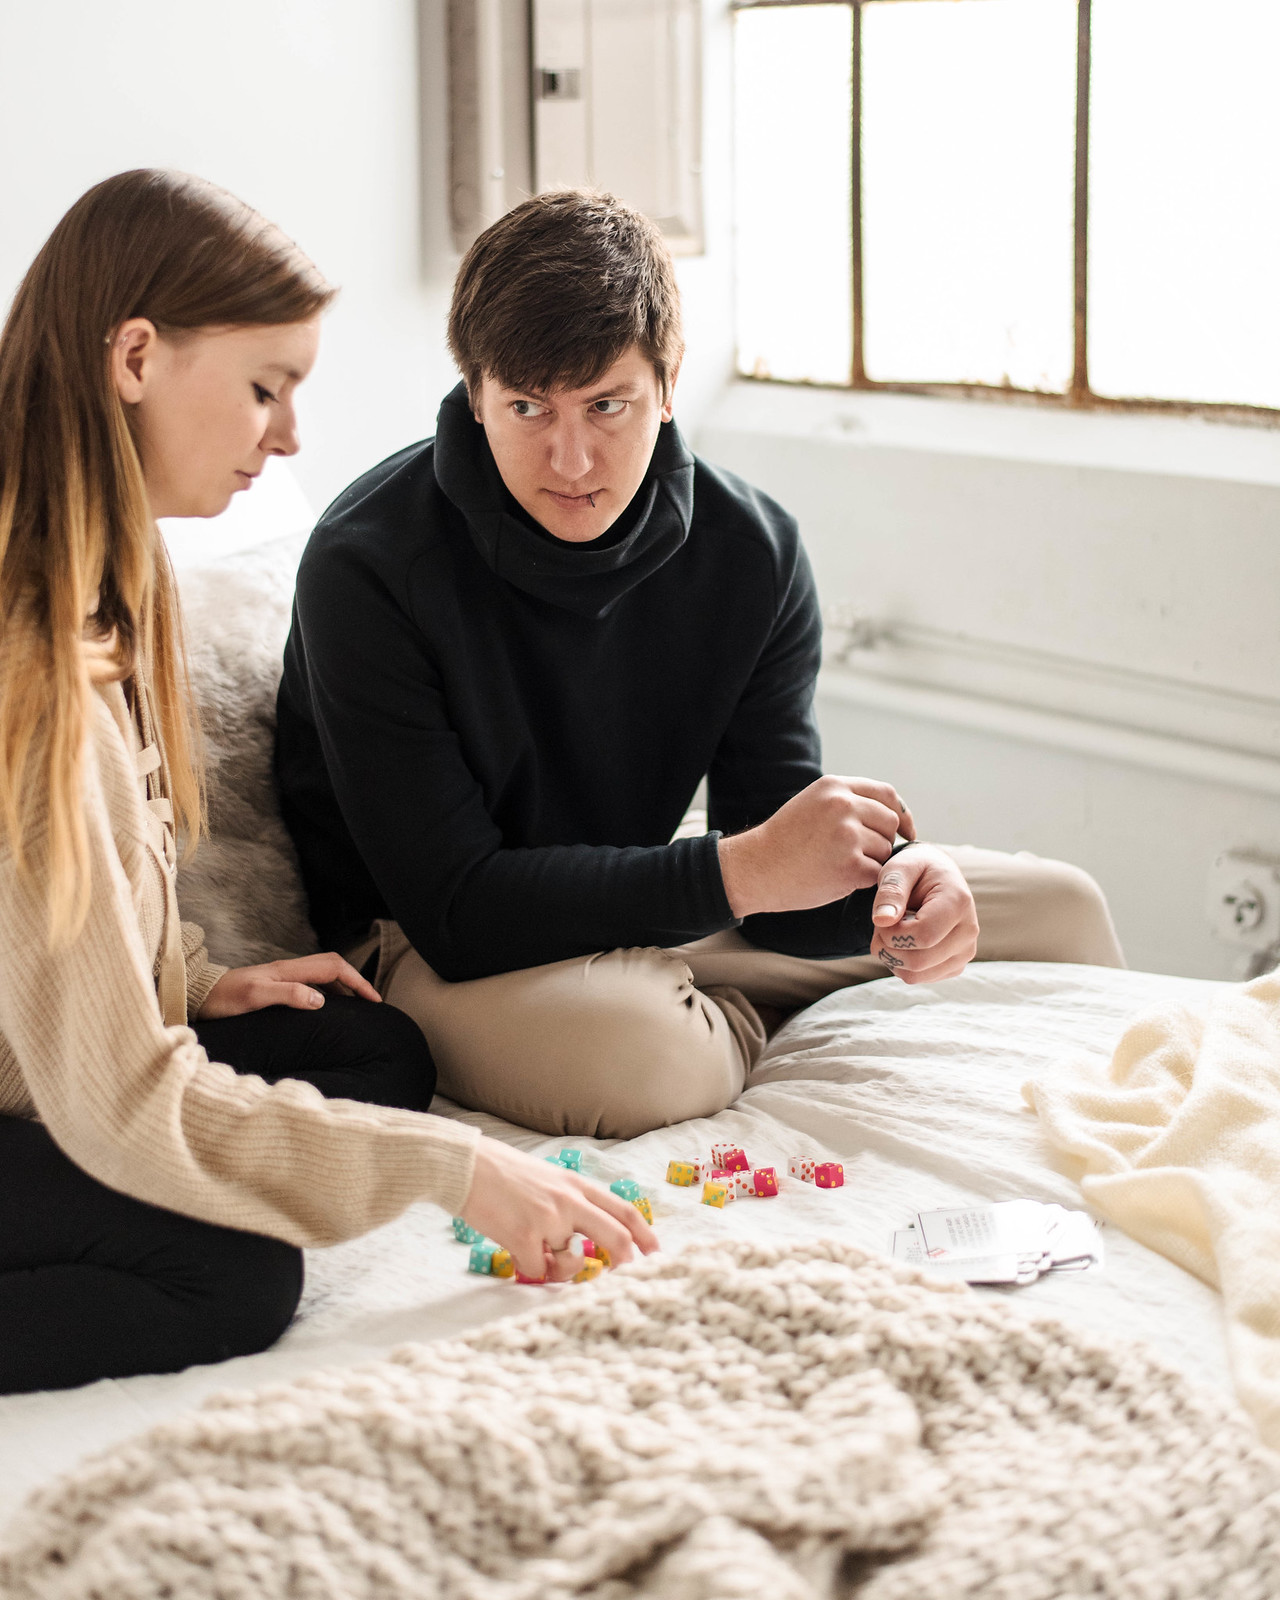 Board Game Couples Studio Session on juliettelaura.com